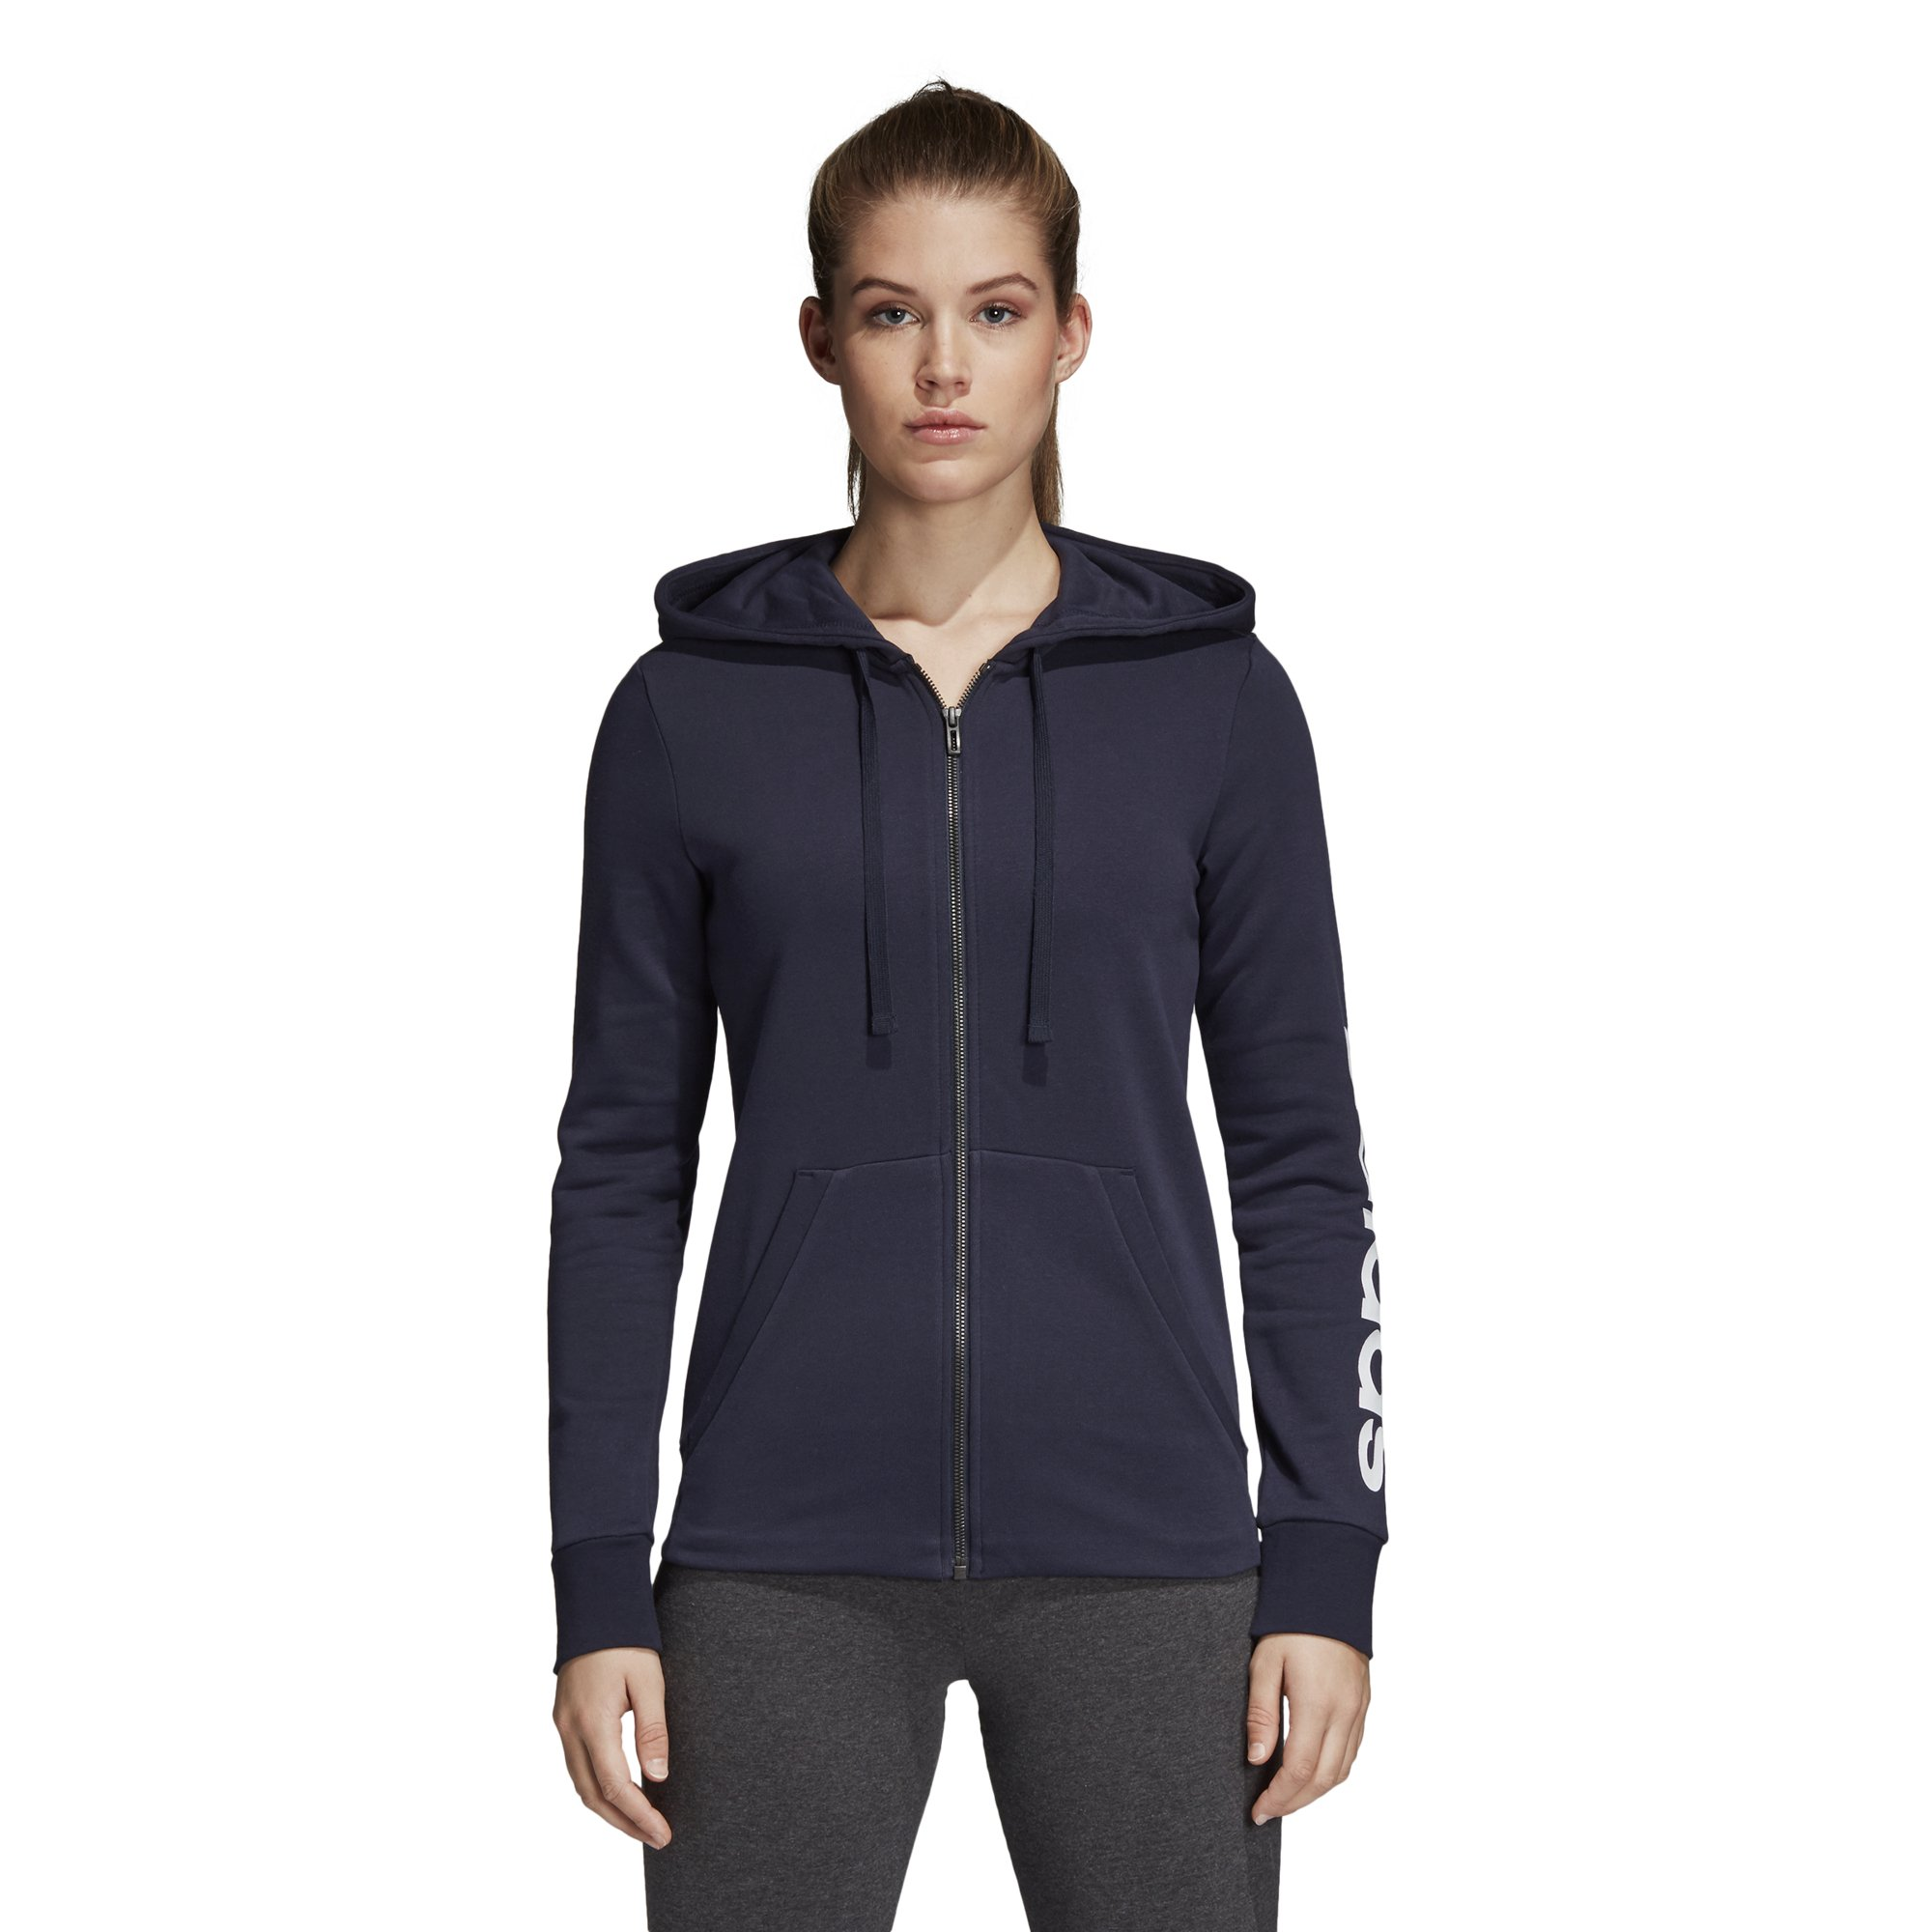 adidas Women's Essentials Linear Full Zip Hoodie Legend Ink/White X-Large by adidas